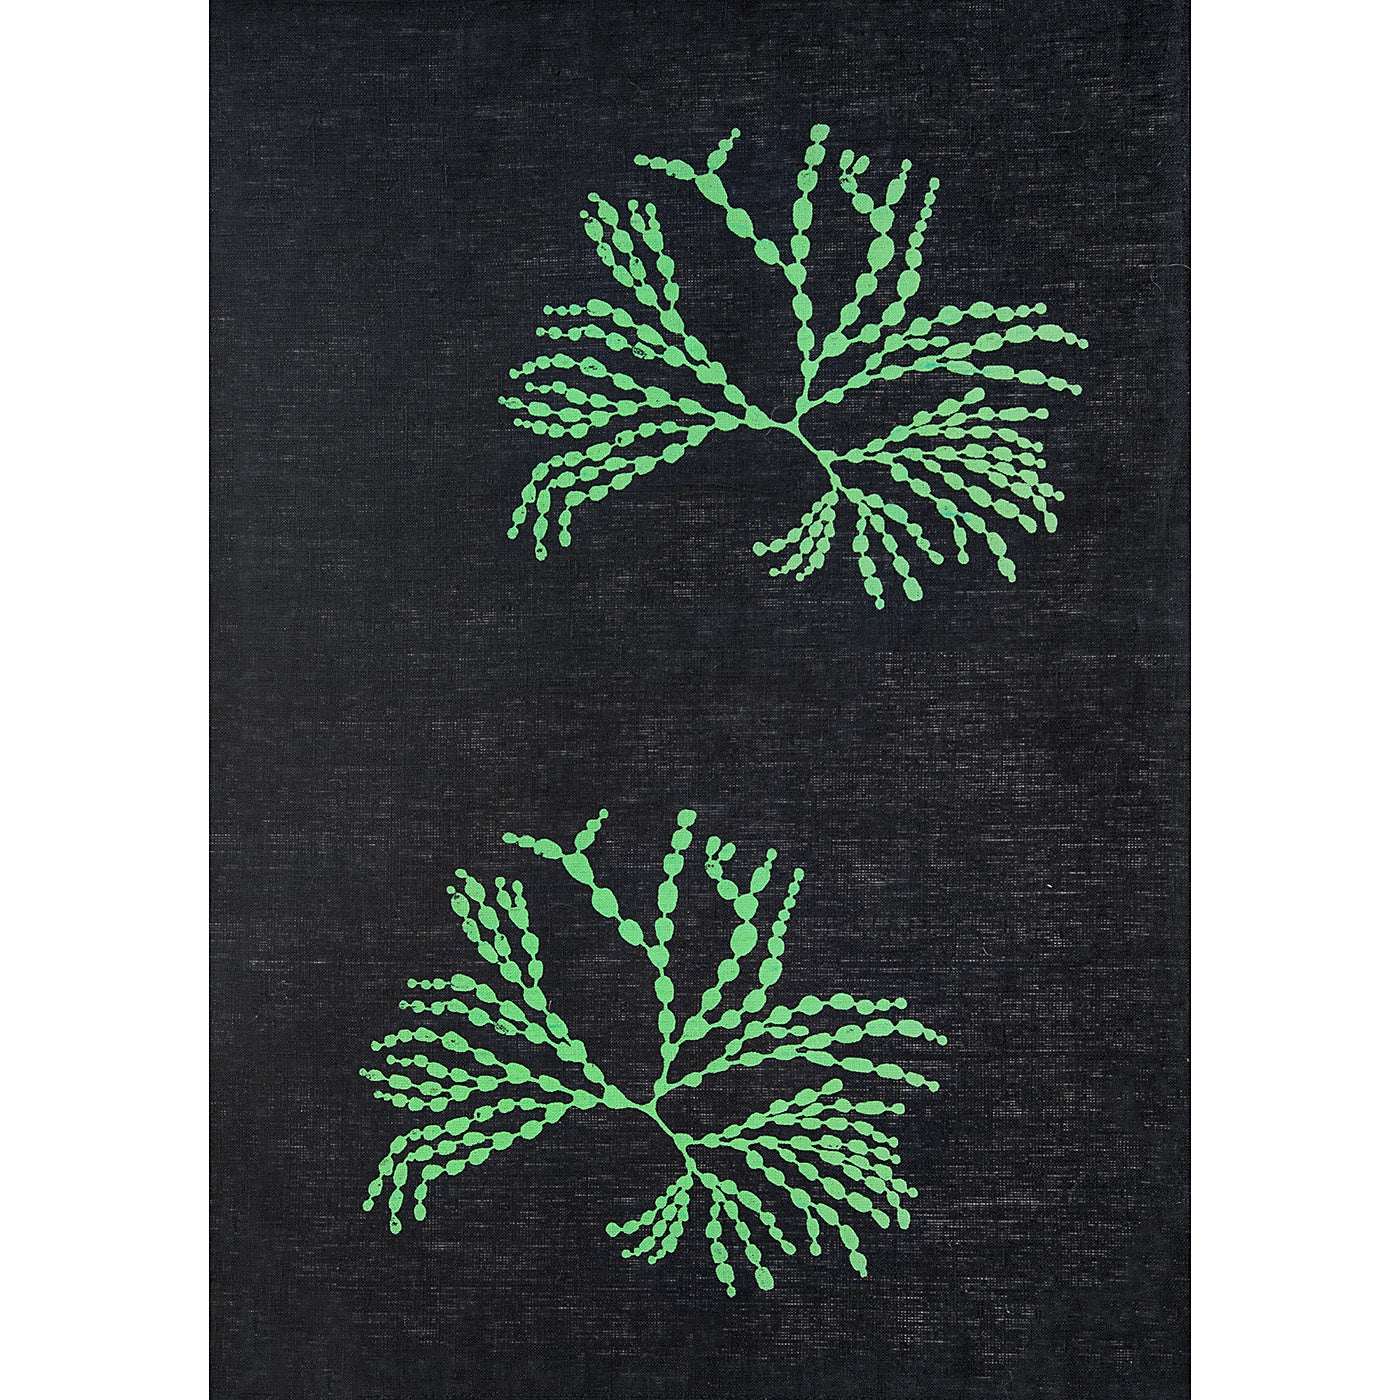 Stalley Textile Co. - Tea Towel - Bubbleweed - Green on Black